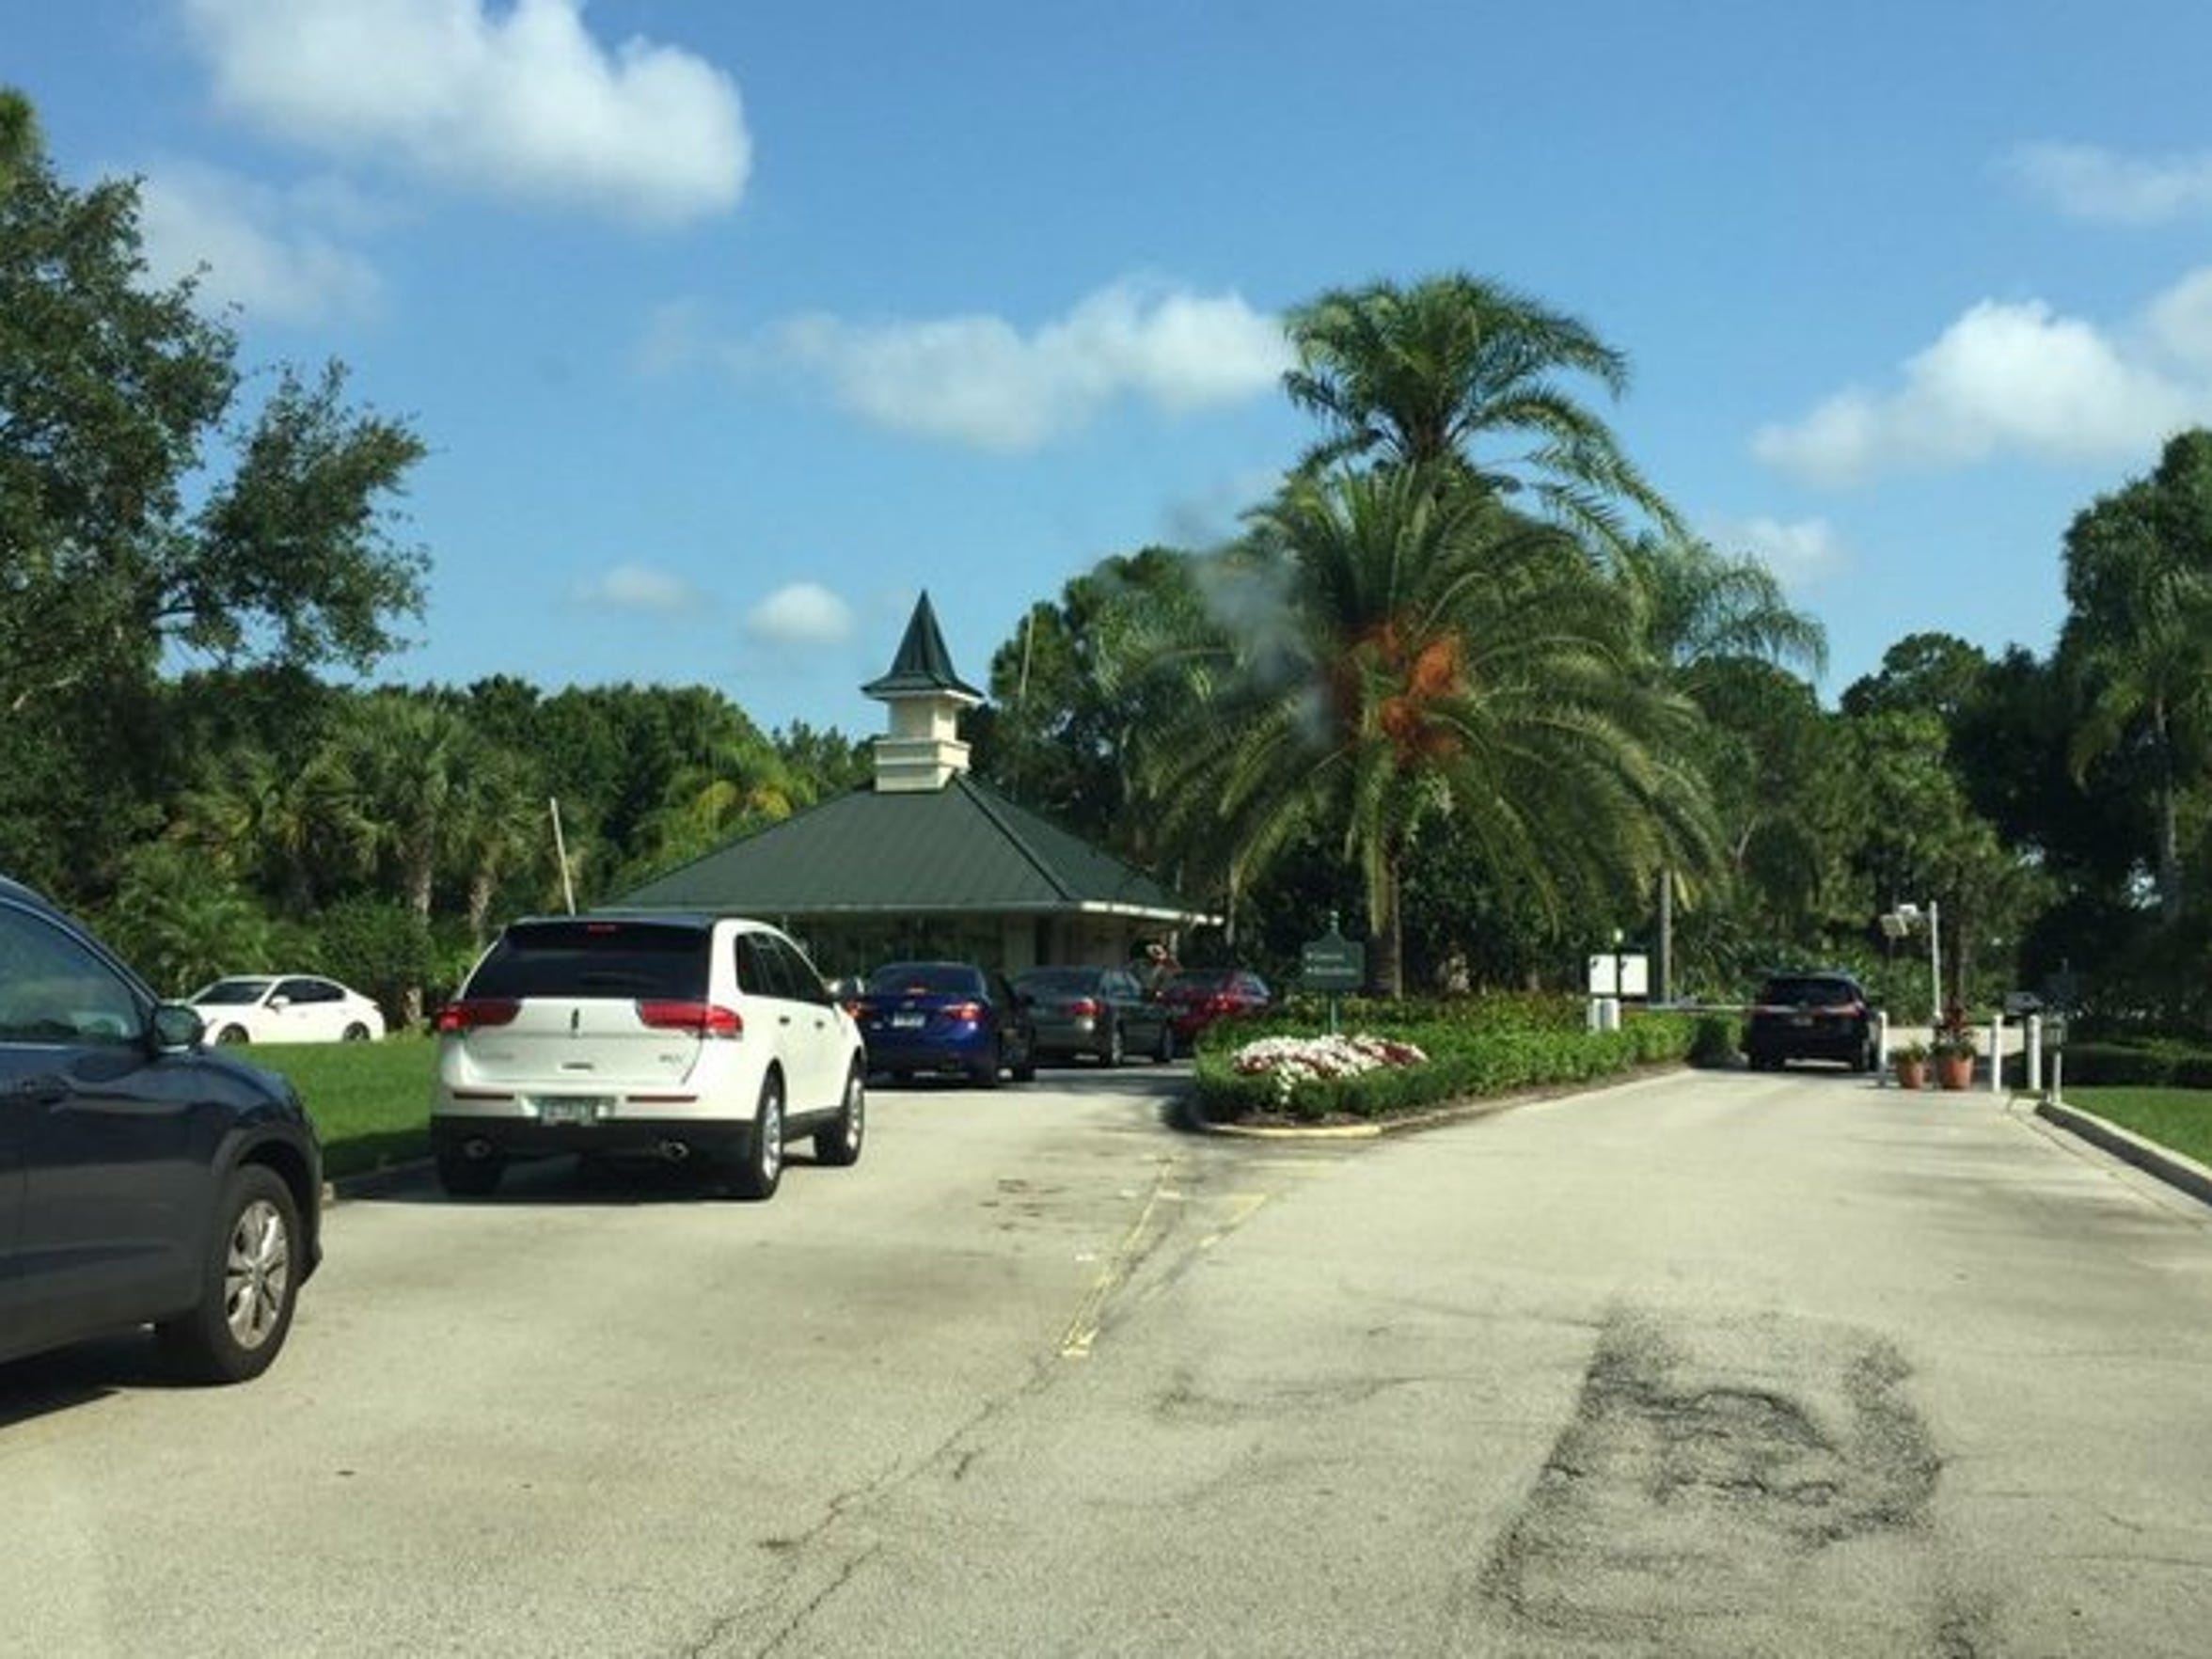 The entrance gate of PGA Village in Port St. Lucie.